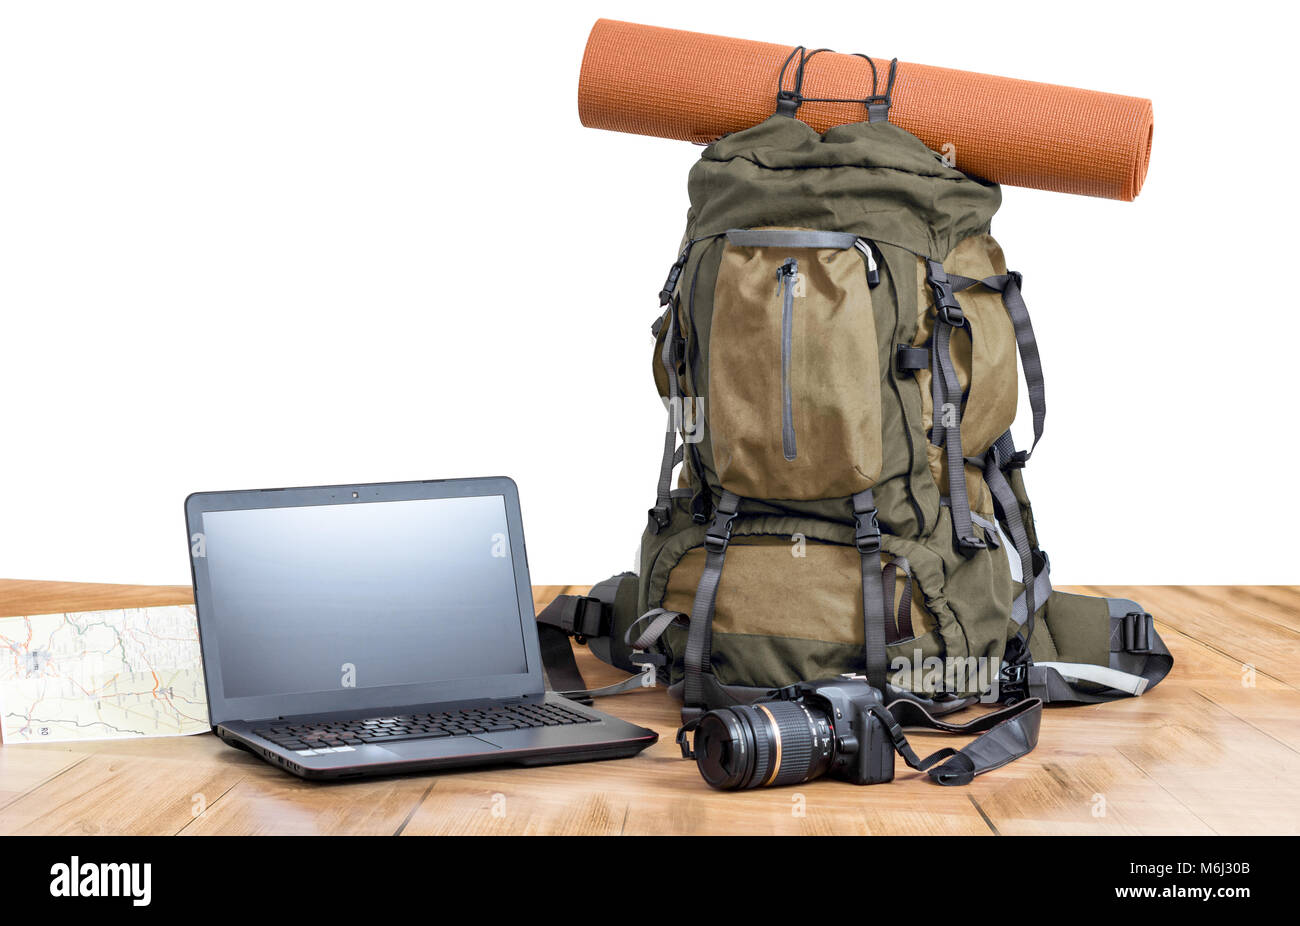 backpack laptop and camera - Stock Image